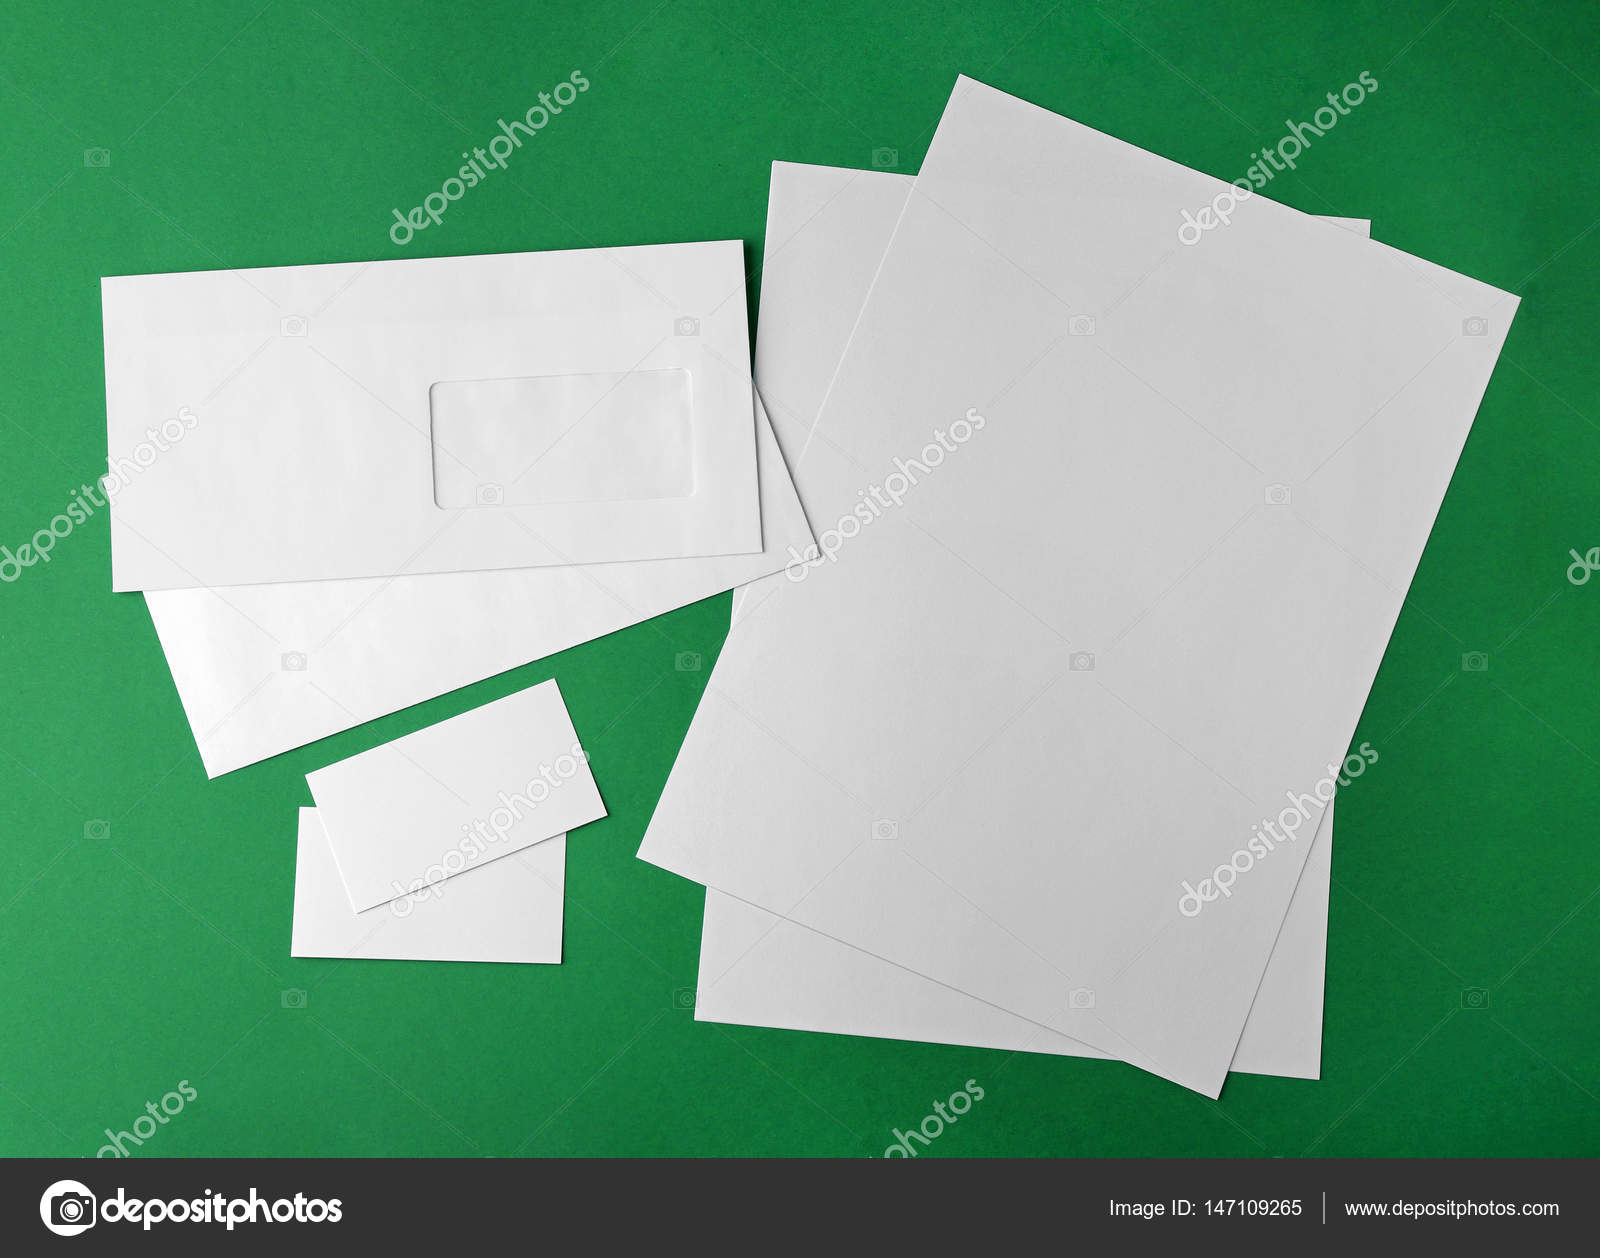 Blank brochure and business cards stock photo belchonock 147109265 blank brochure and business cards fotografia de stock reheart Image collections